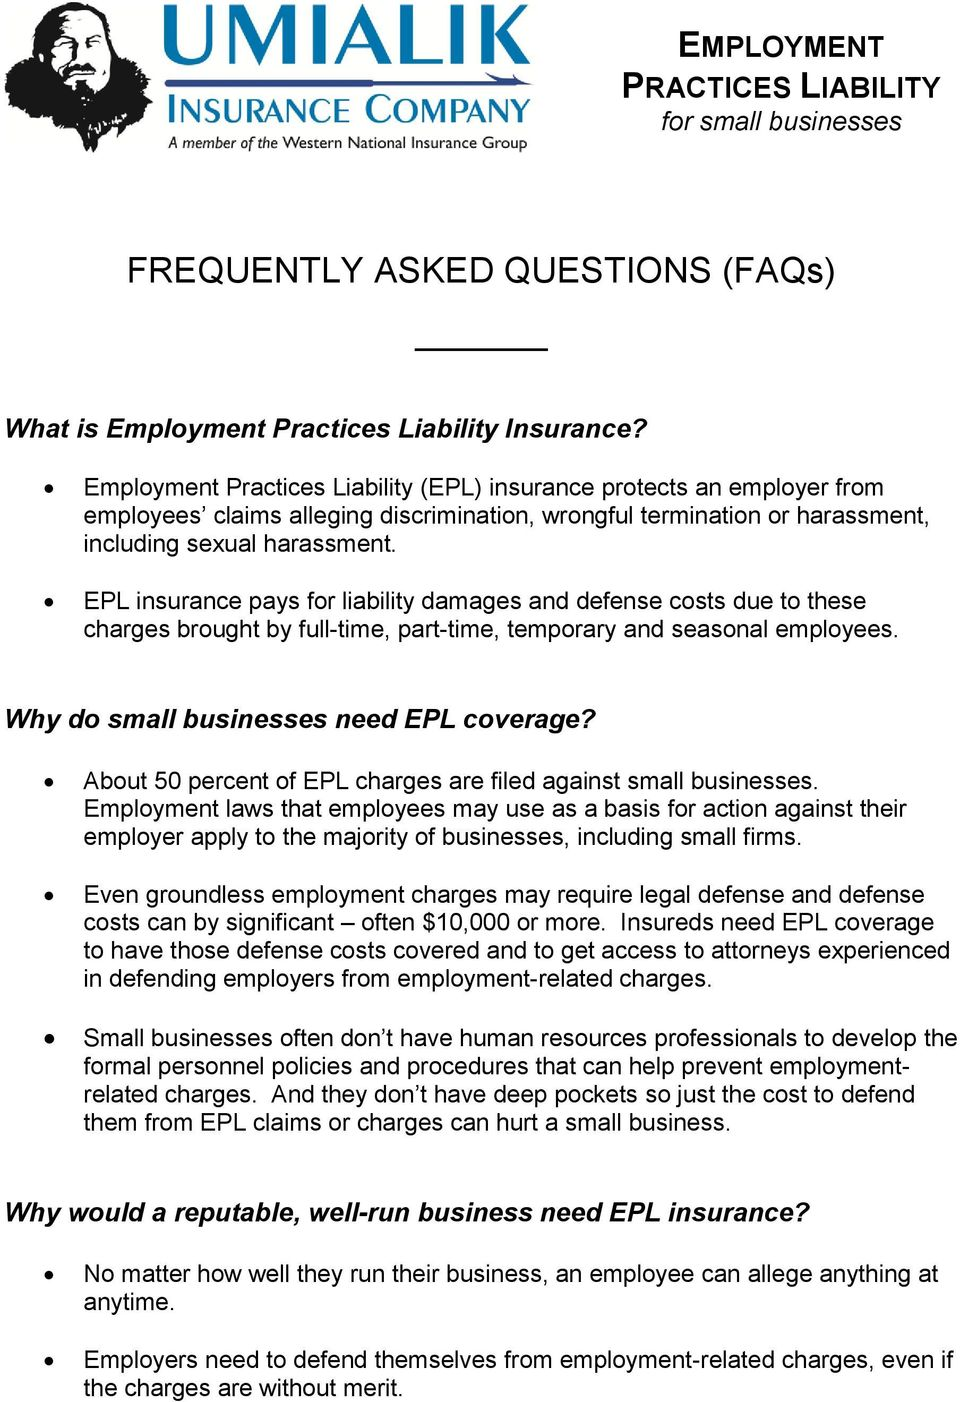 EPL insurance pays fr liability damages and defense csts due t these charges brught by full-time, part-time, temprary and seasnal emplyees. Why d small businesses need EPL cverage?